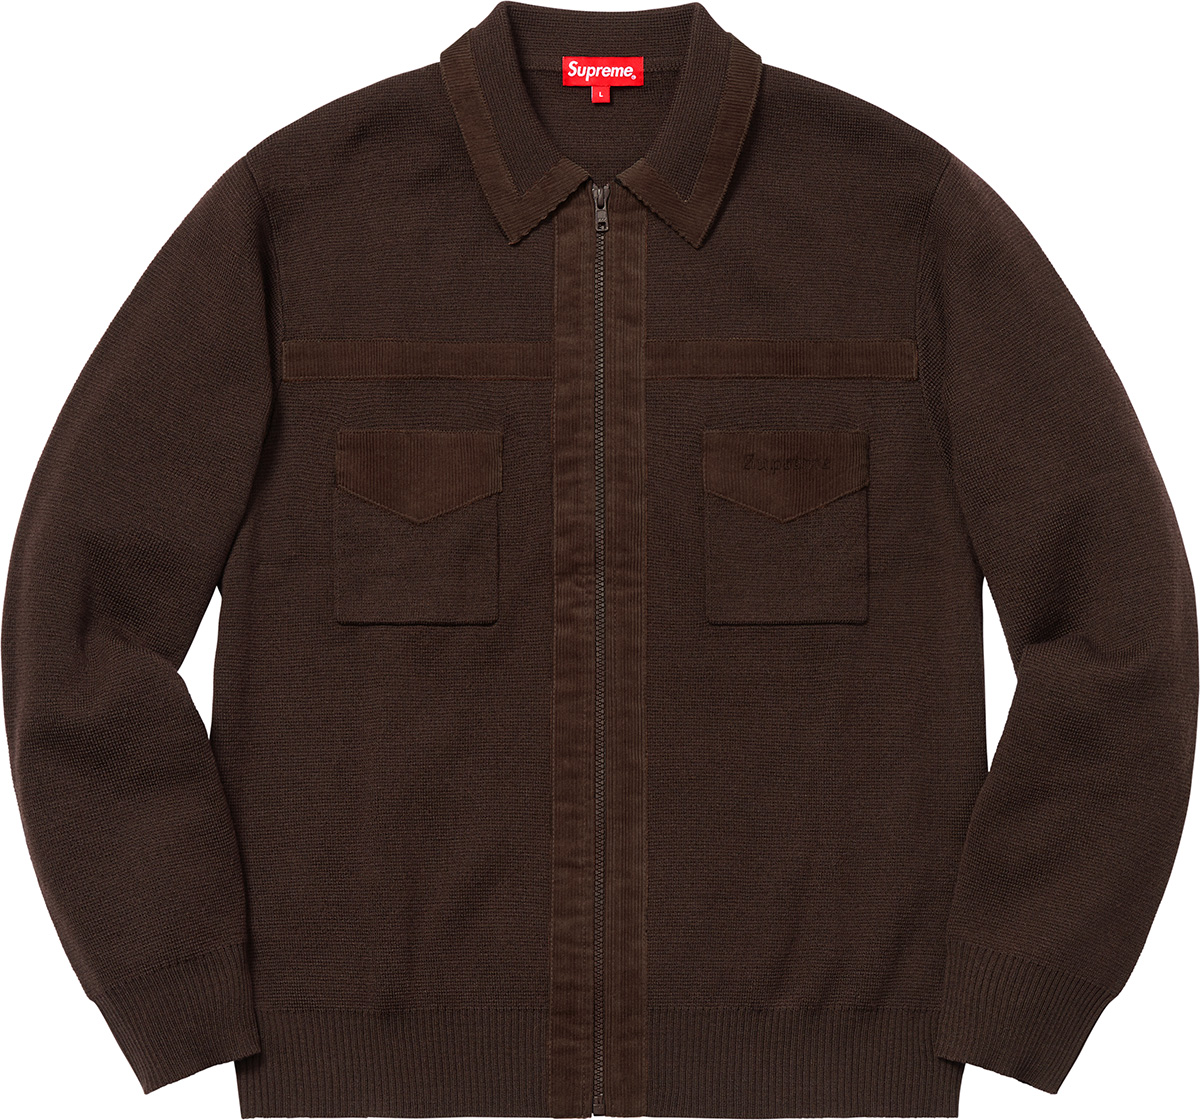 supreme-18aw-fall-winter-corduroy-detailed-zip-sweater